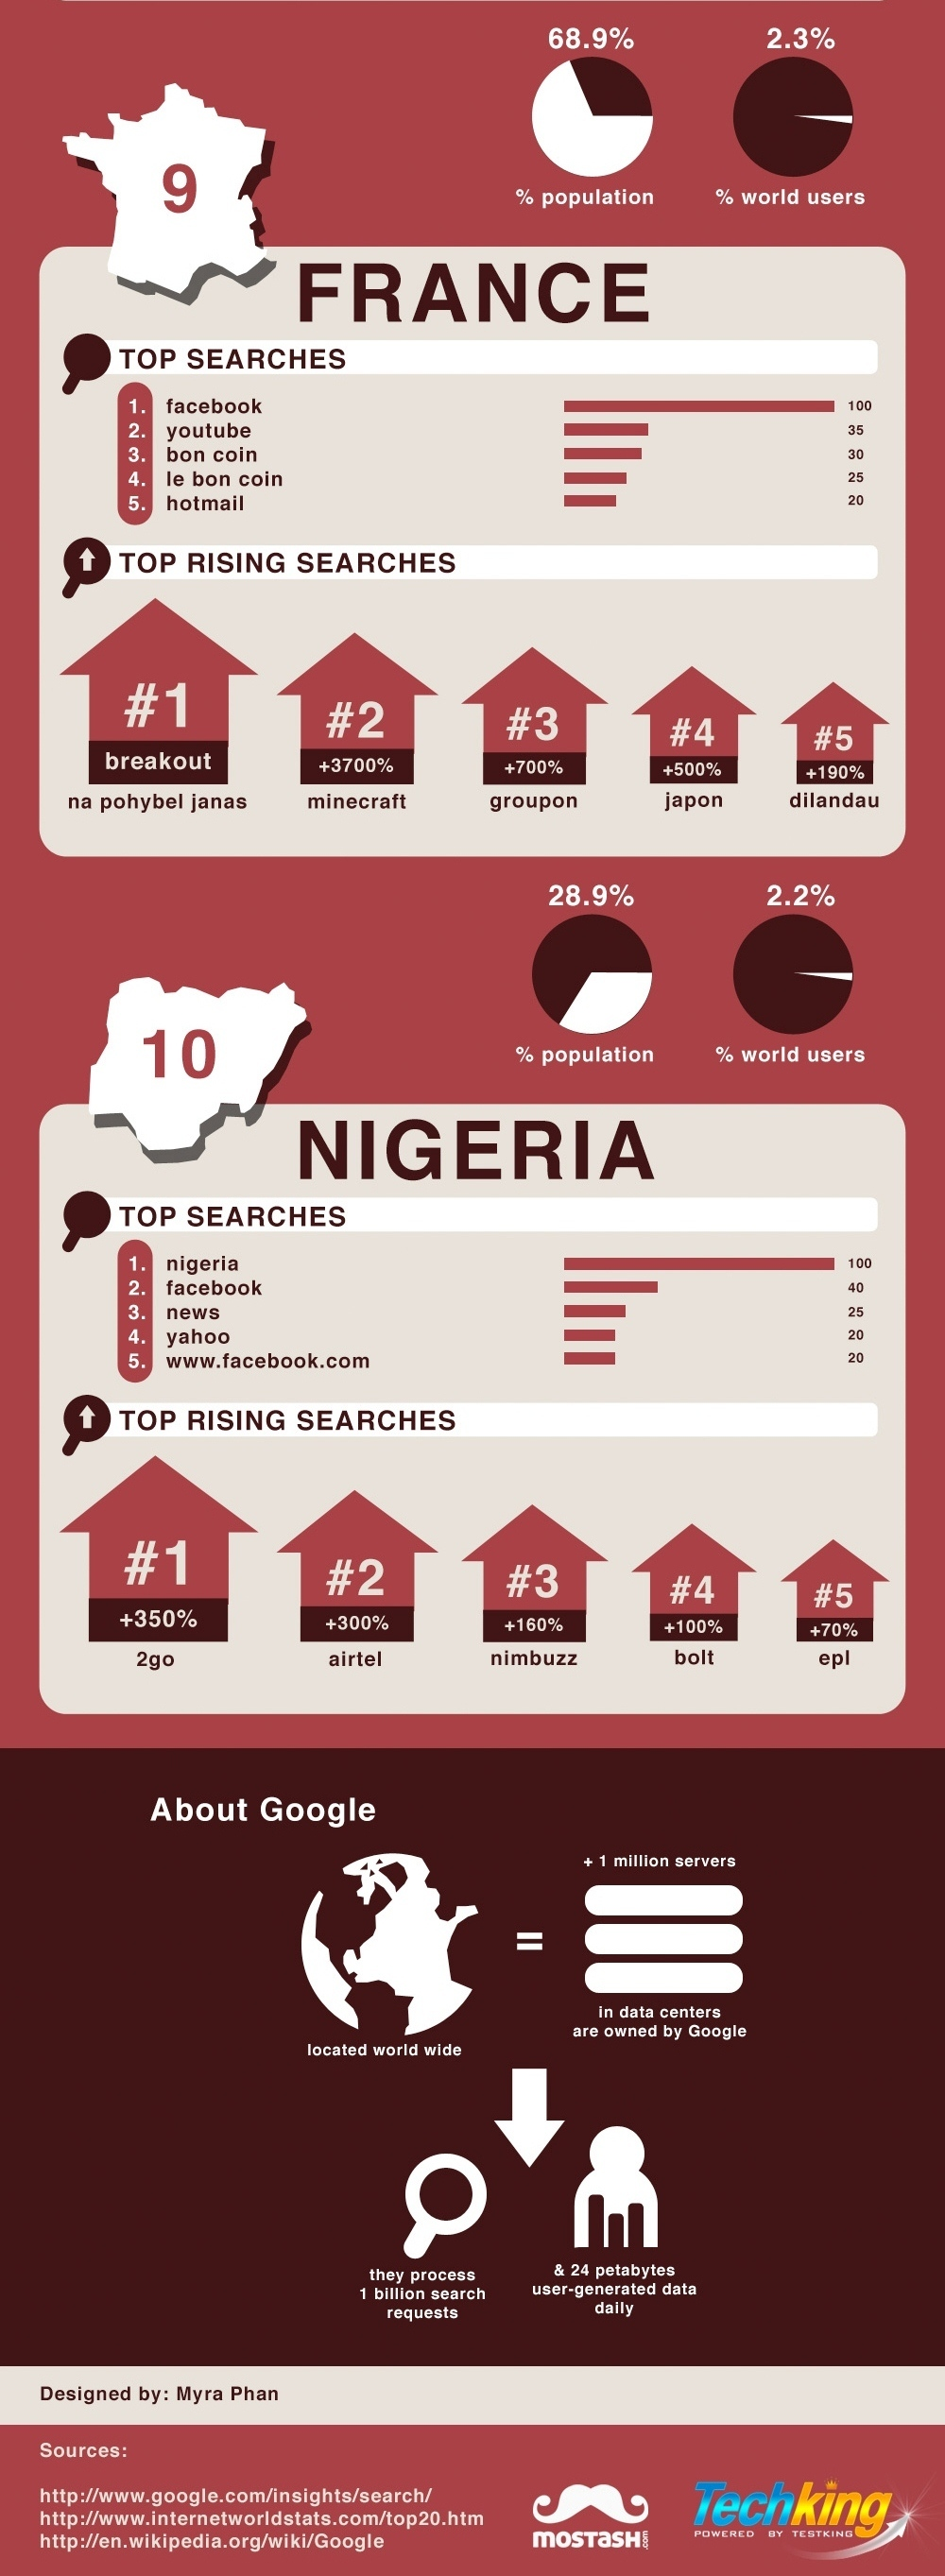 Top 10 Countries and What They Search For